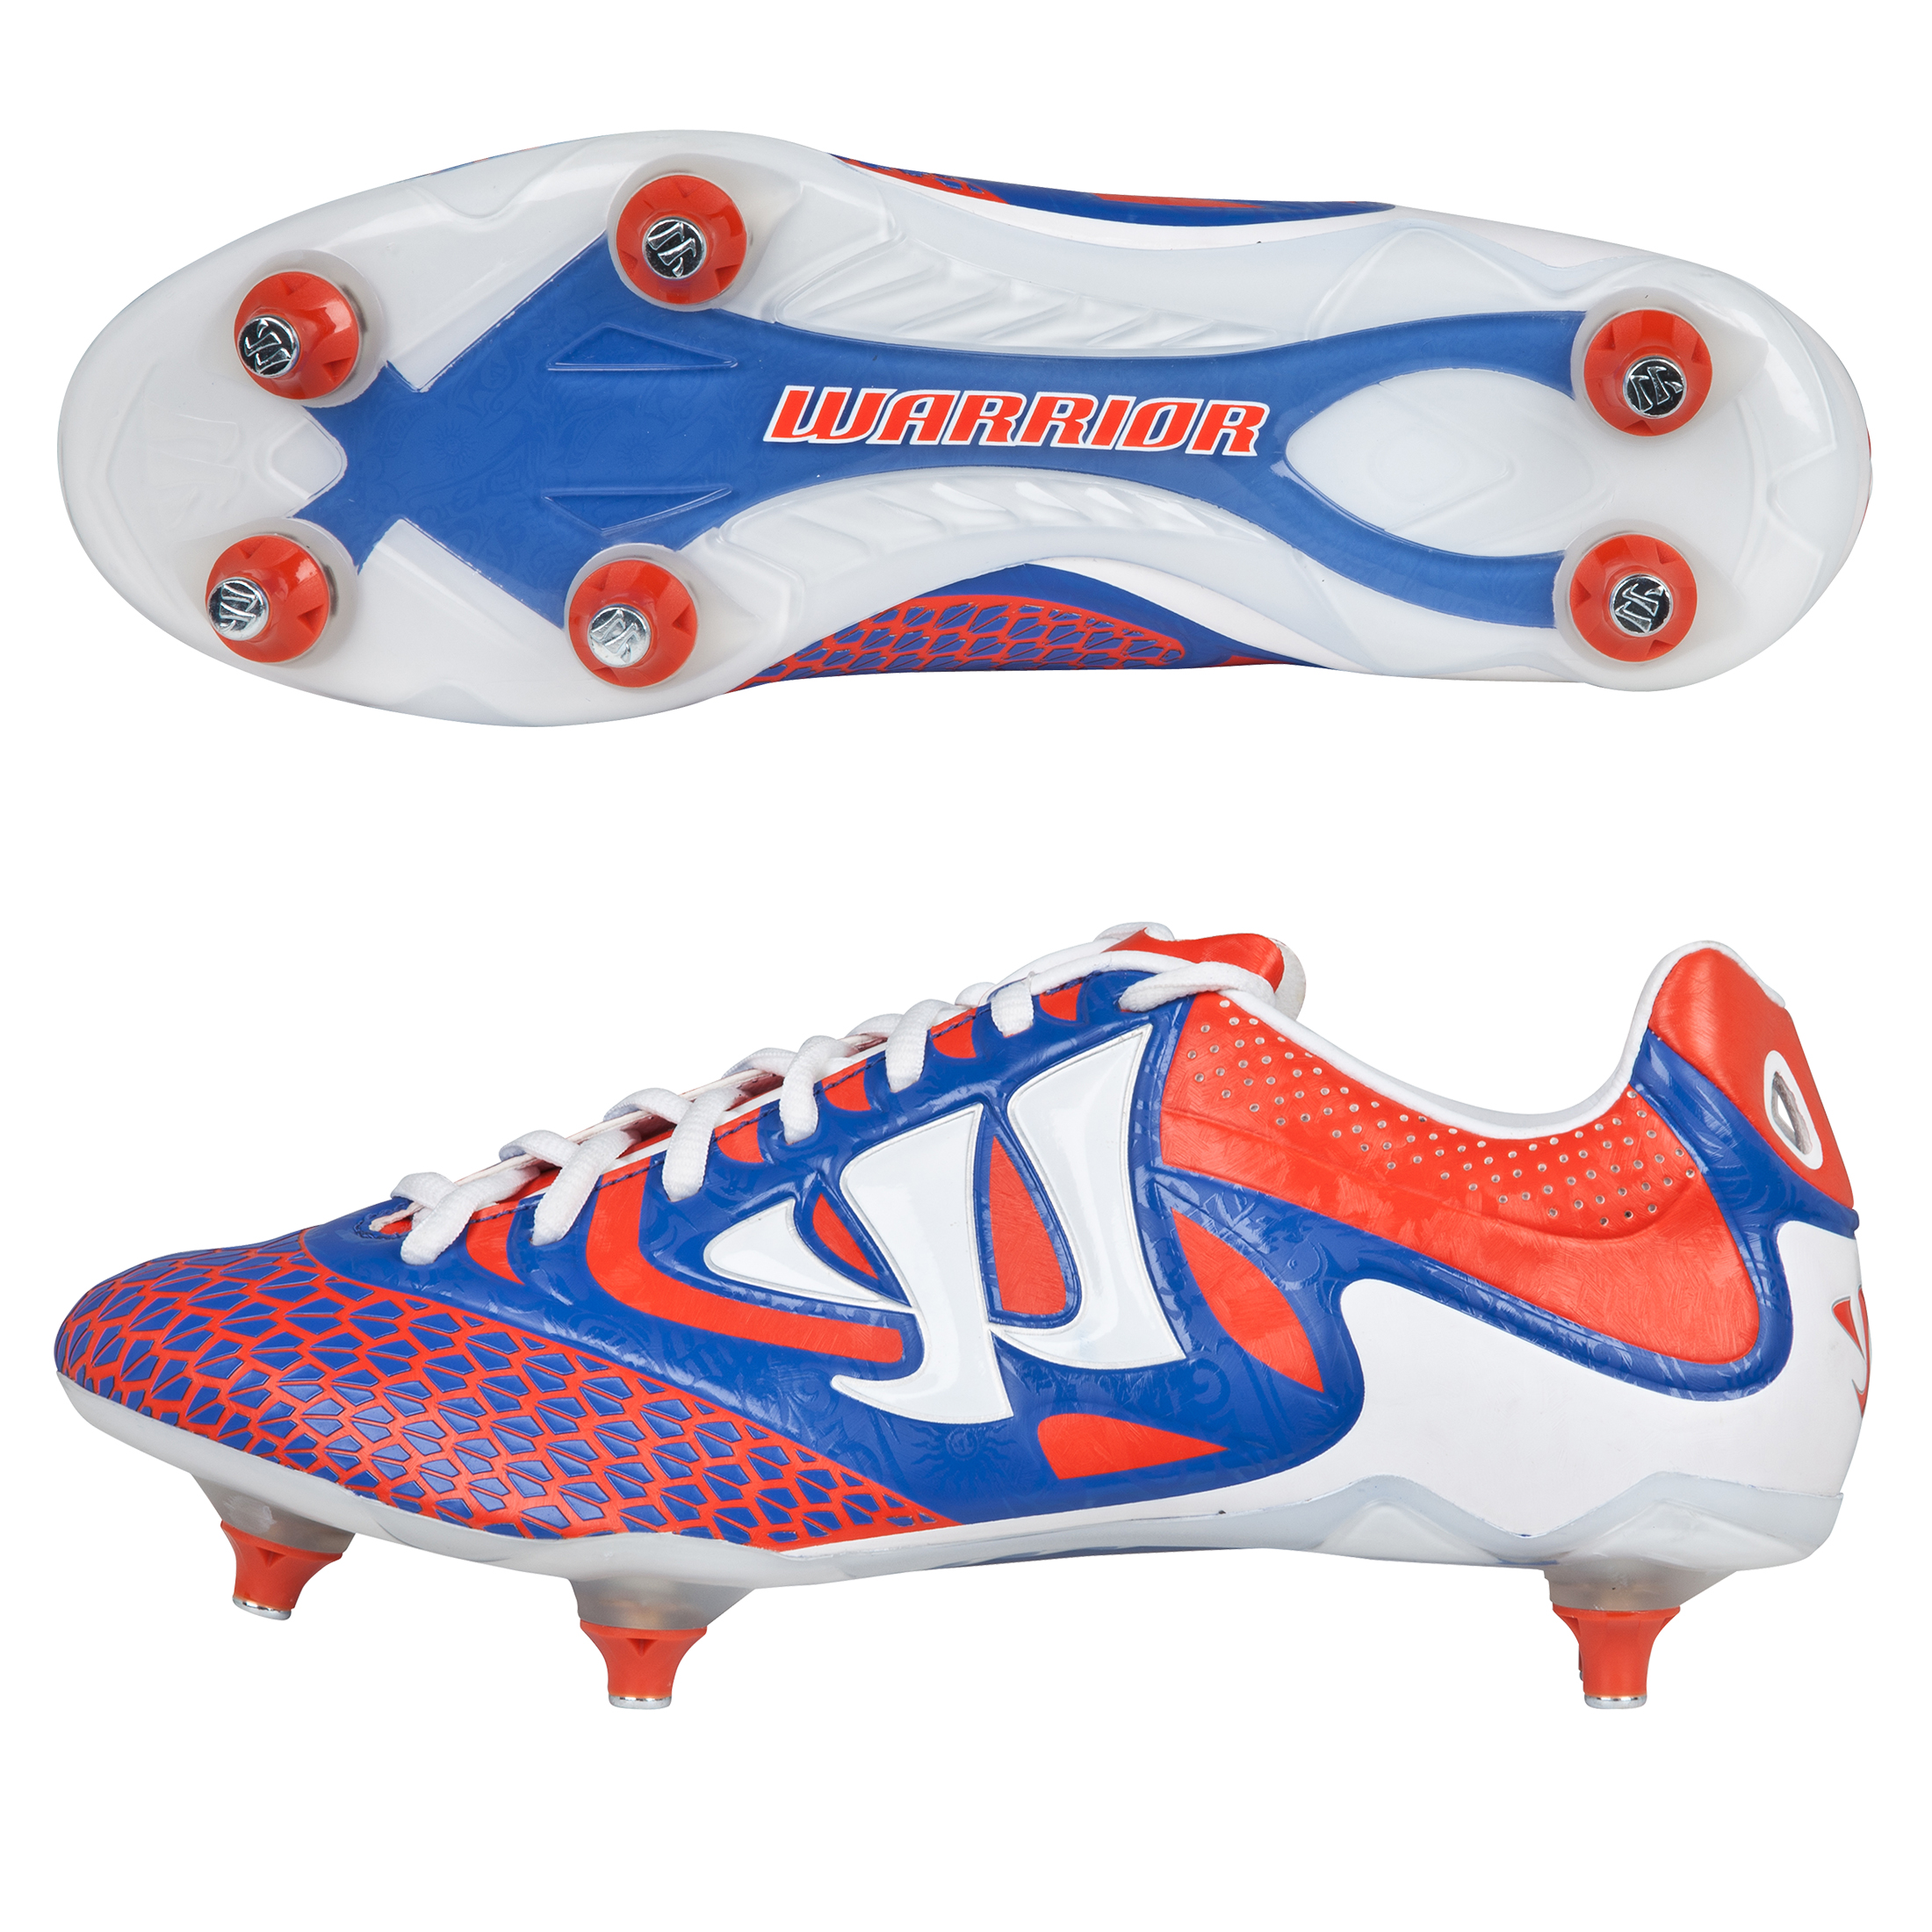 Warrior Sports Skreamer Combat Soft Ground Football Boots - Spicy Orange/Baja Blue/White - Kids